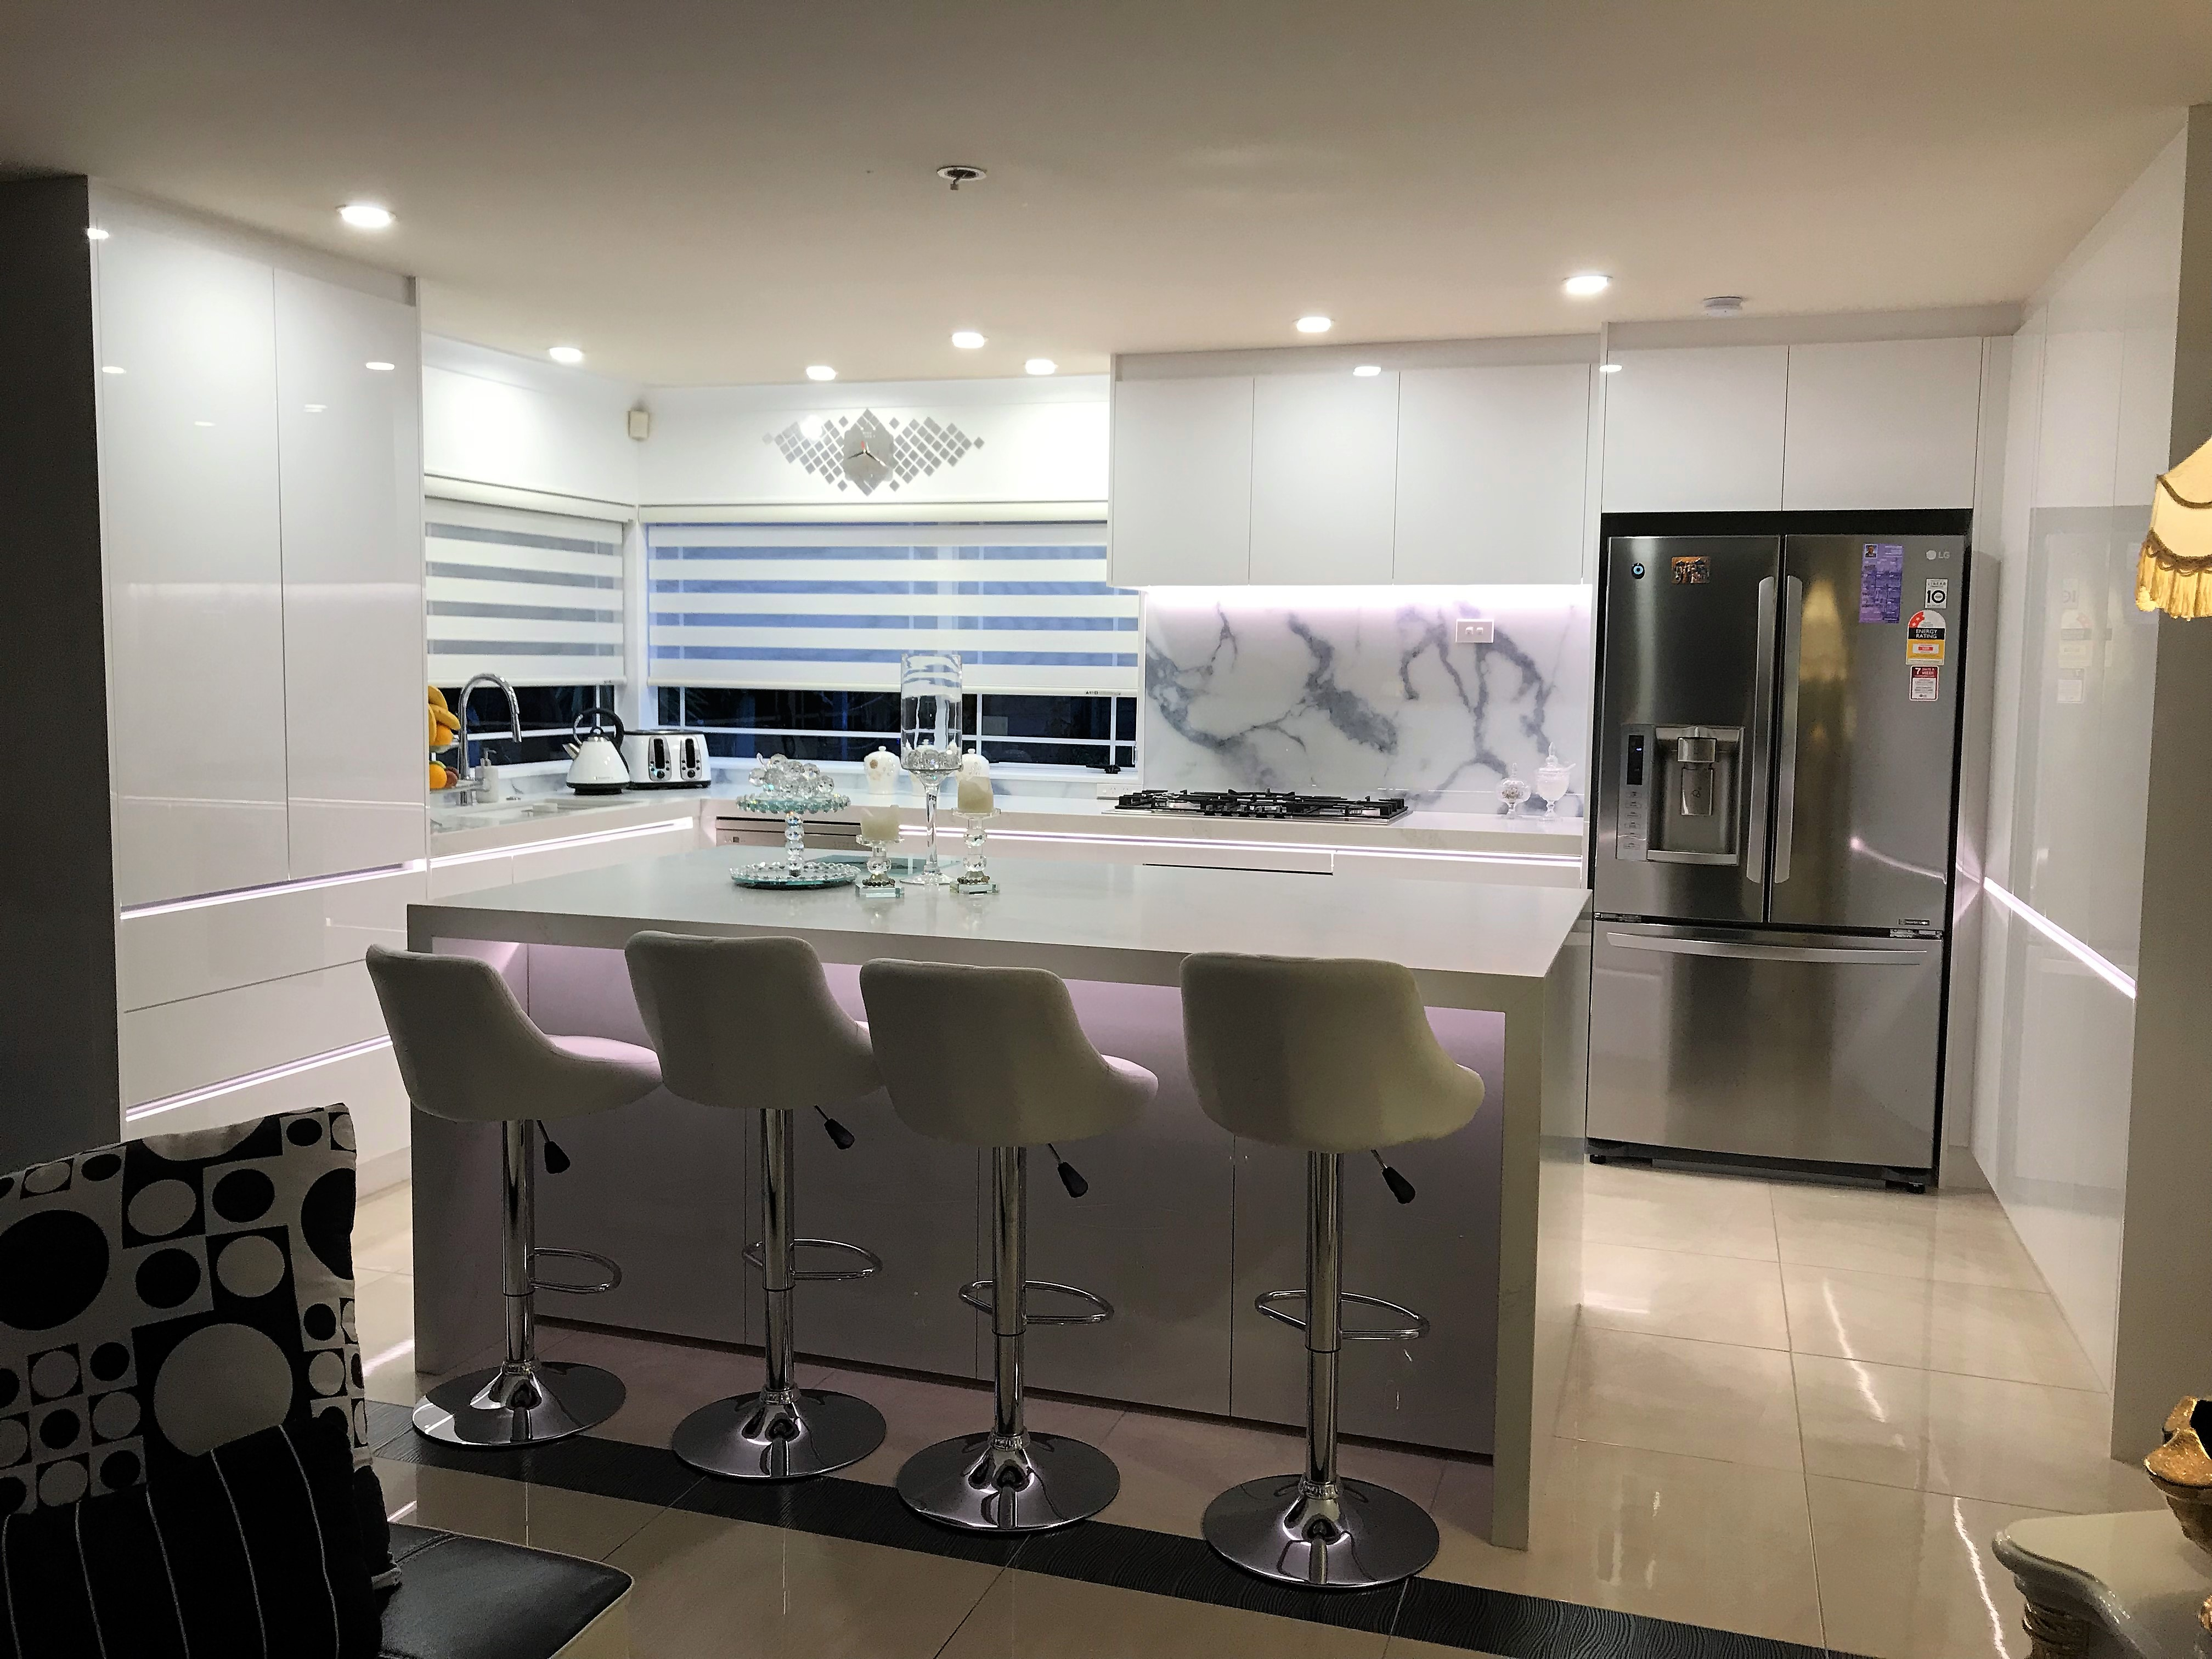 GJ-Kitchens-dannemoraskitchen-5-20181211023504599